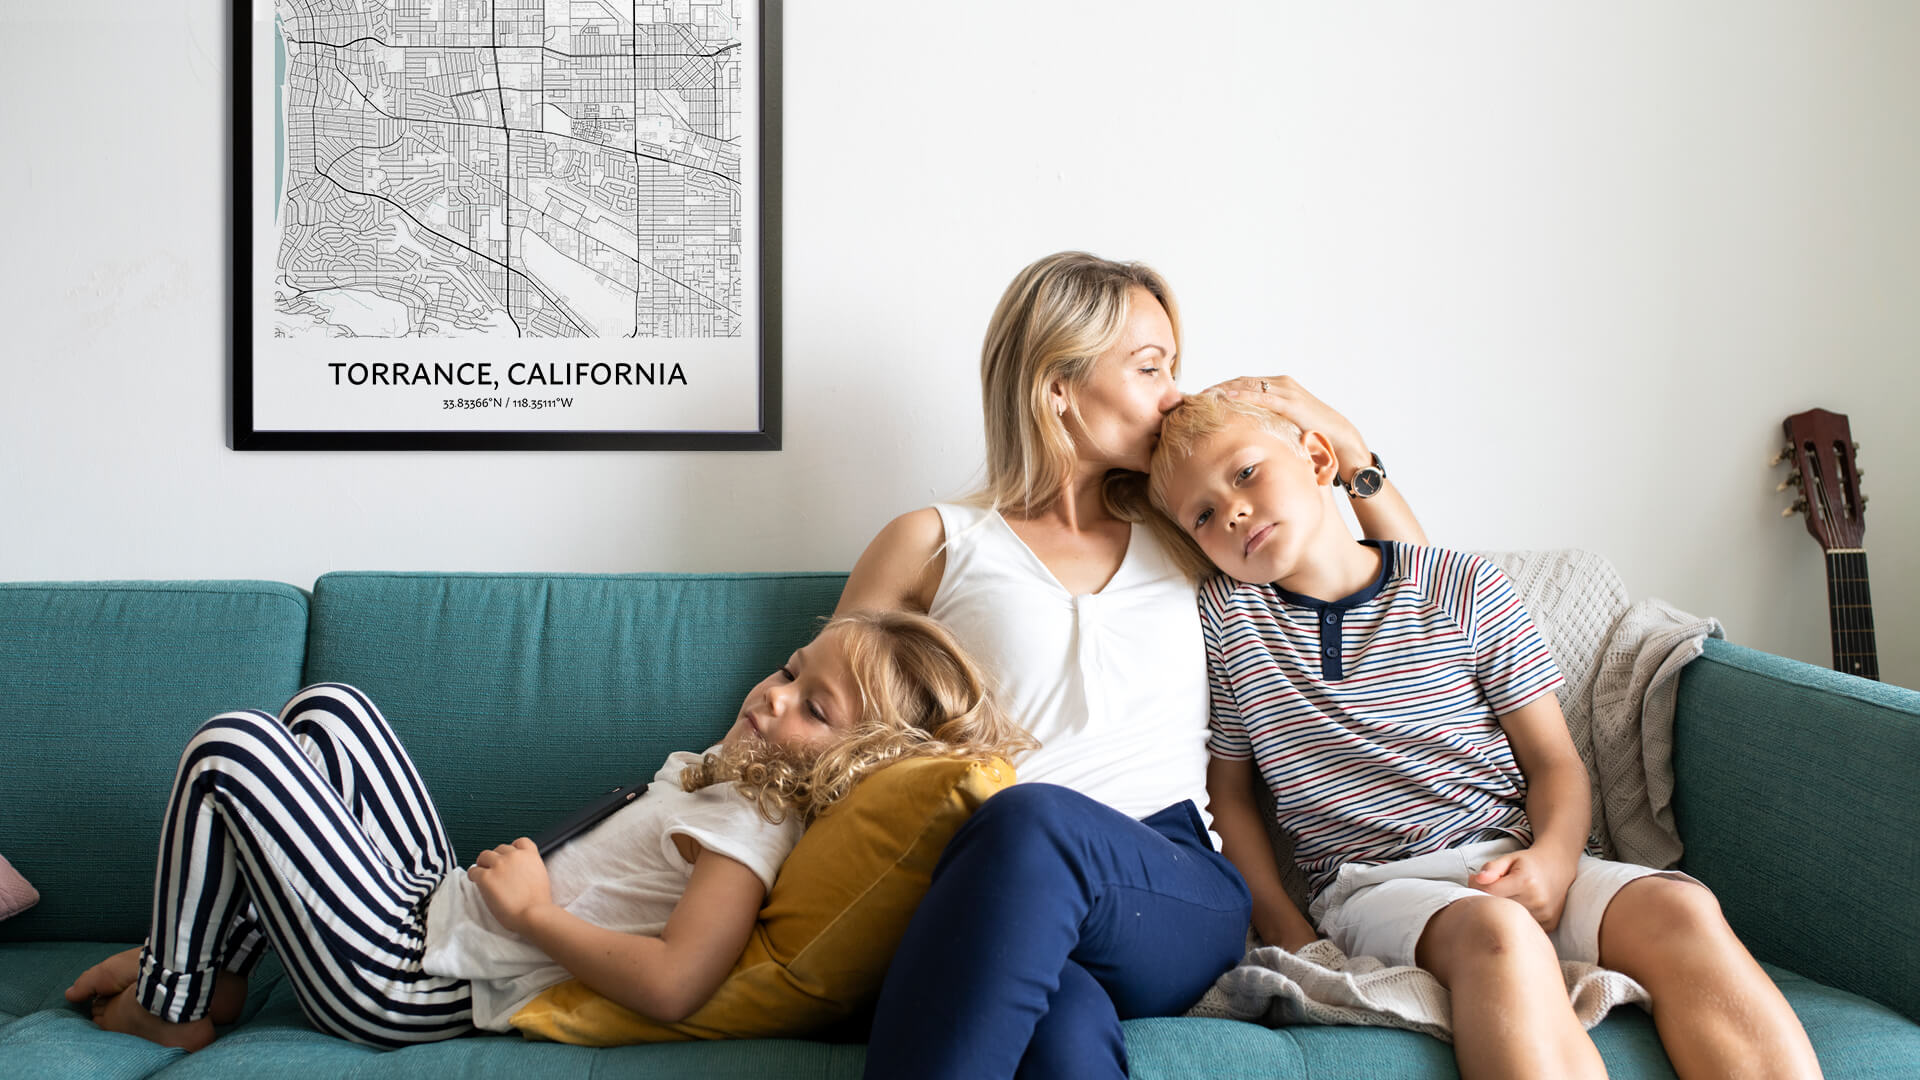 Torrance map poster